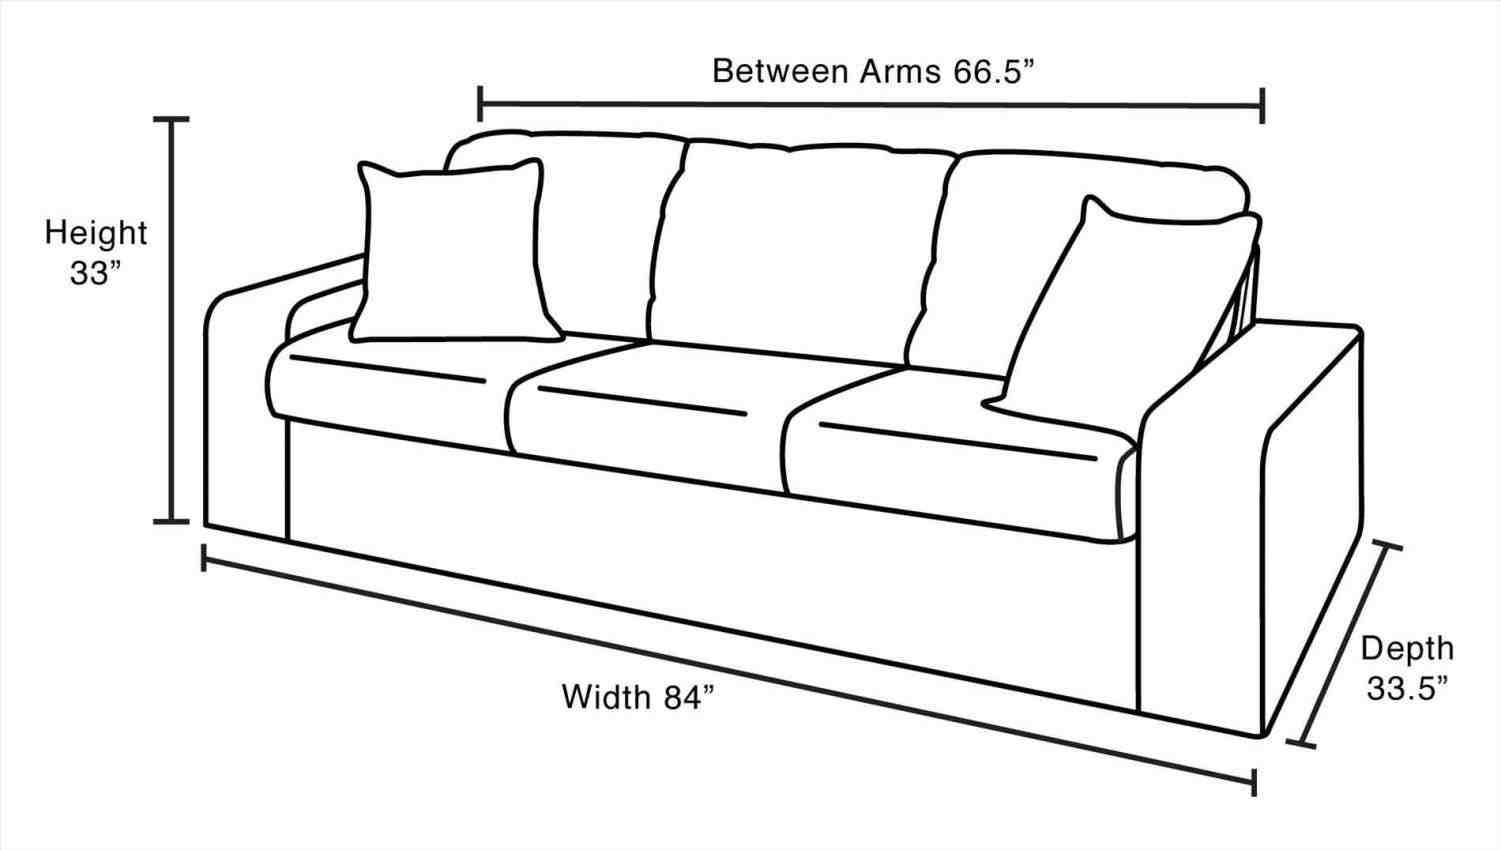 Lounge Chair Dimensions In Meters Http Www Numsekongen Com Lounge Chair Dimensions Met Furniture Design Living Room Wooden Sofa Designs Modern Sofa Designs